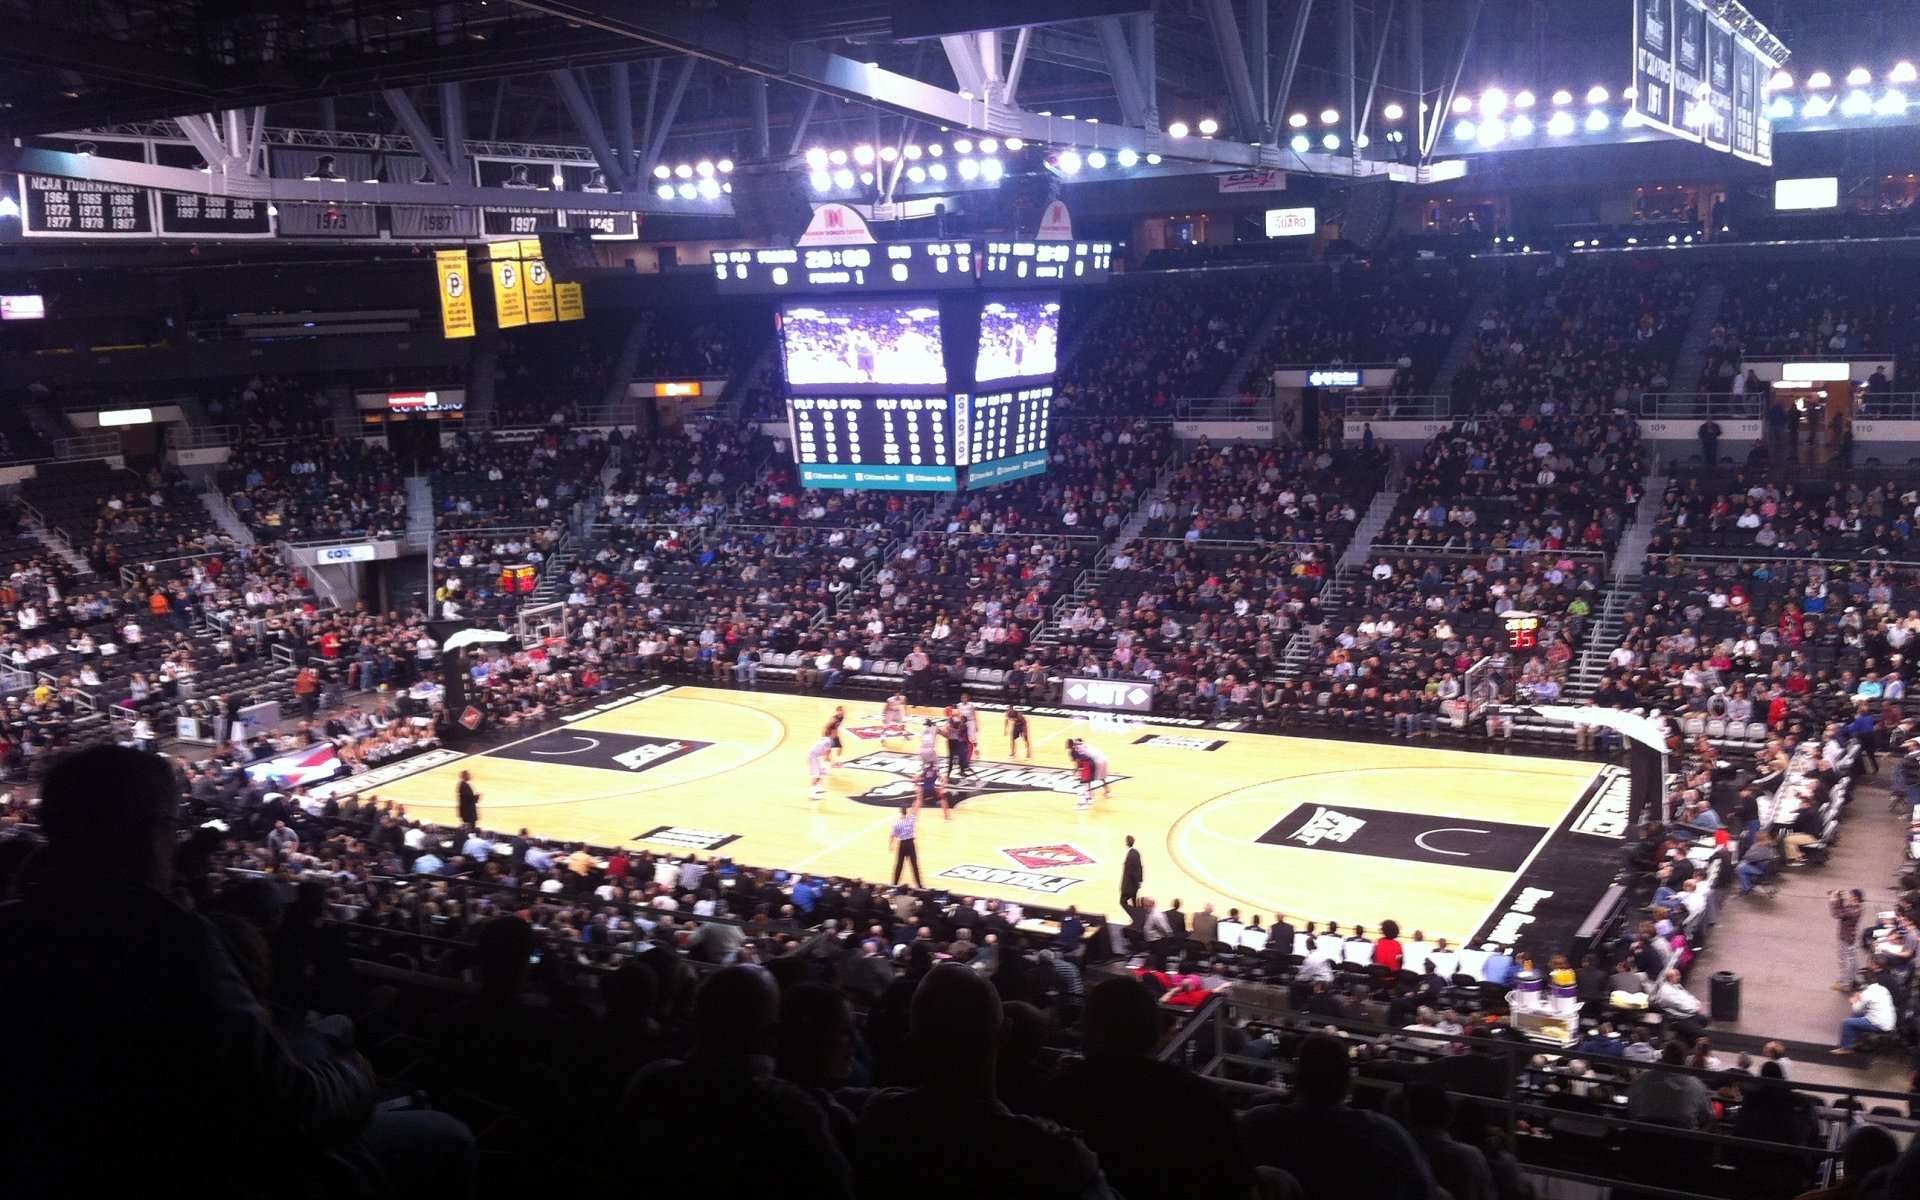 Big East Conference College Basketball Arena Wallpapers